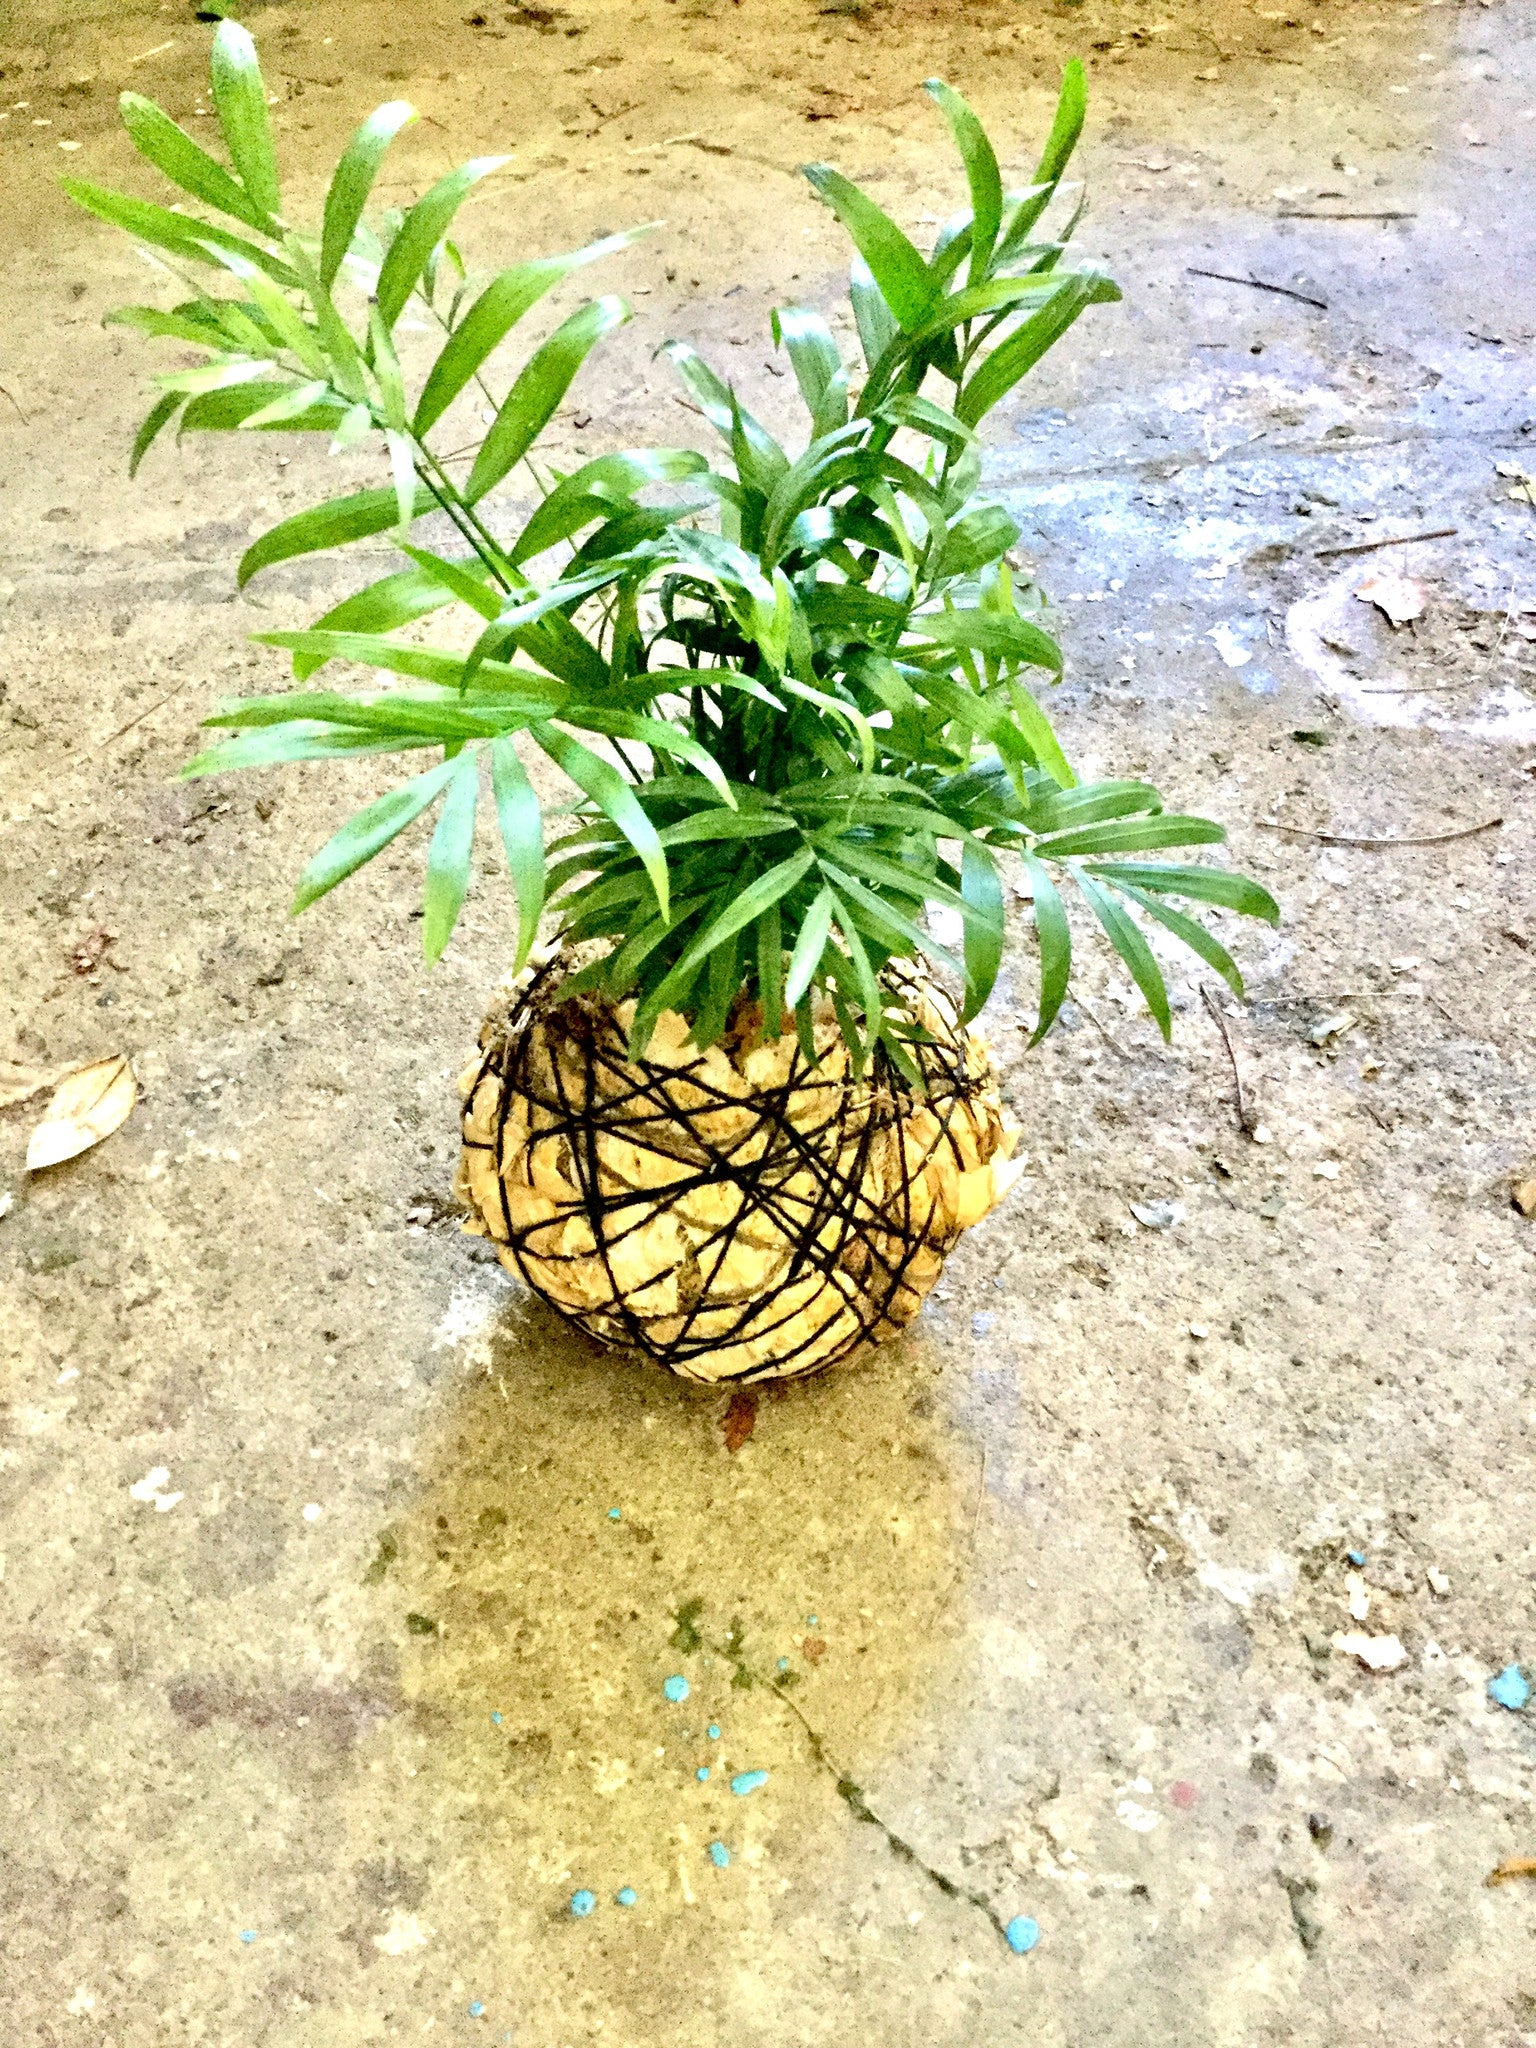 Kokedama Making - December 9